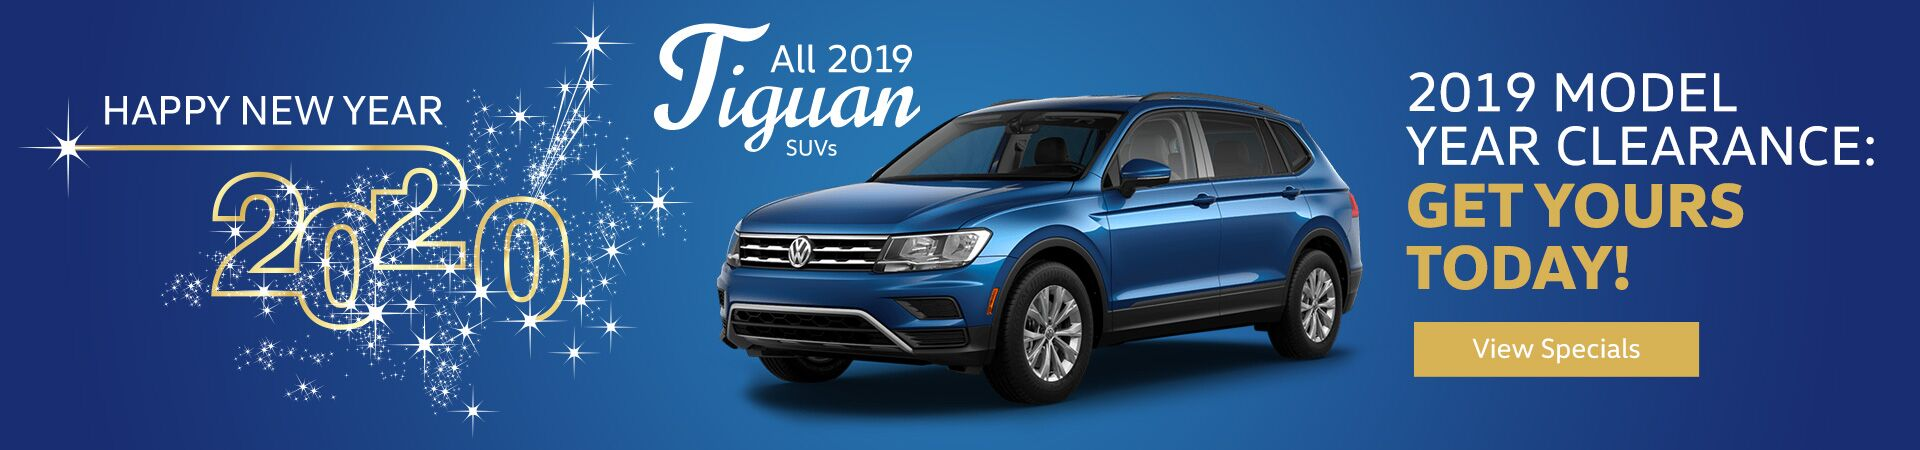 2019 Tiguan Model Year Clearance